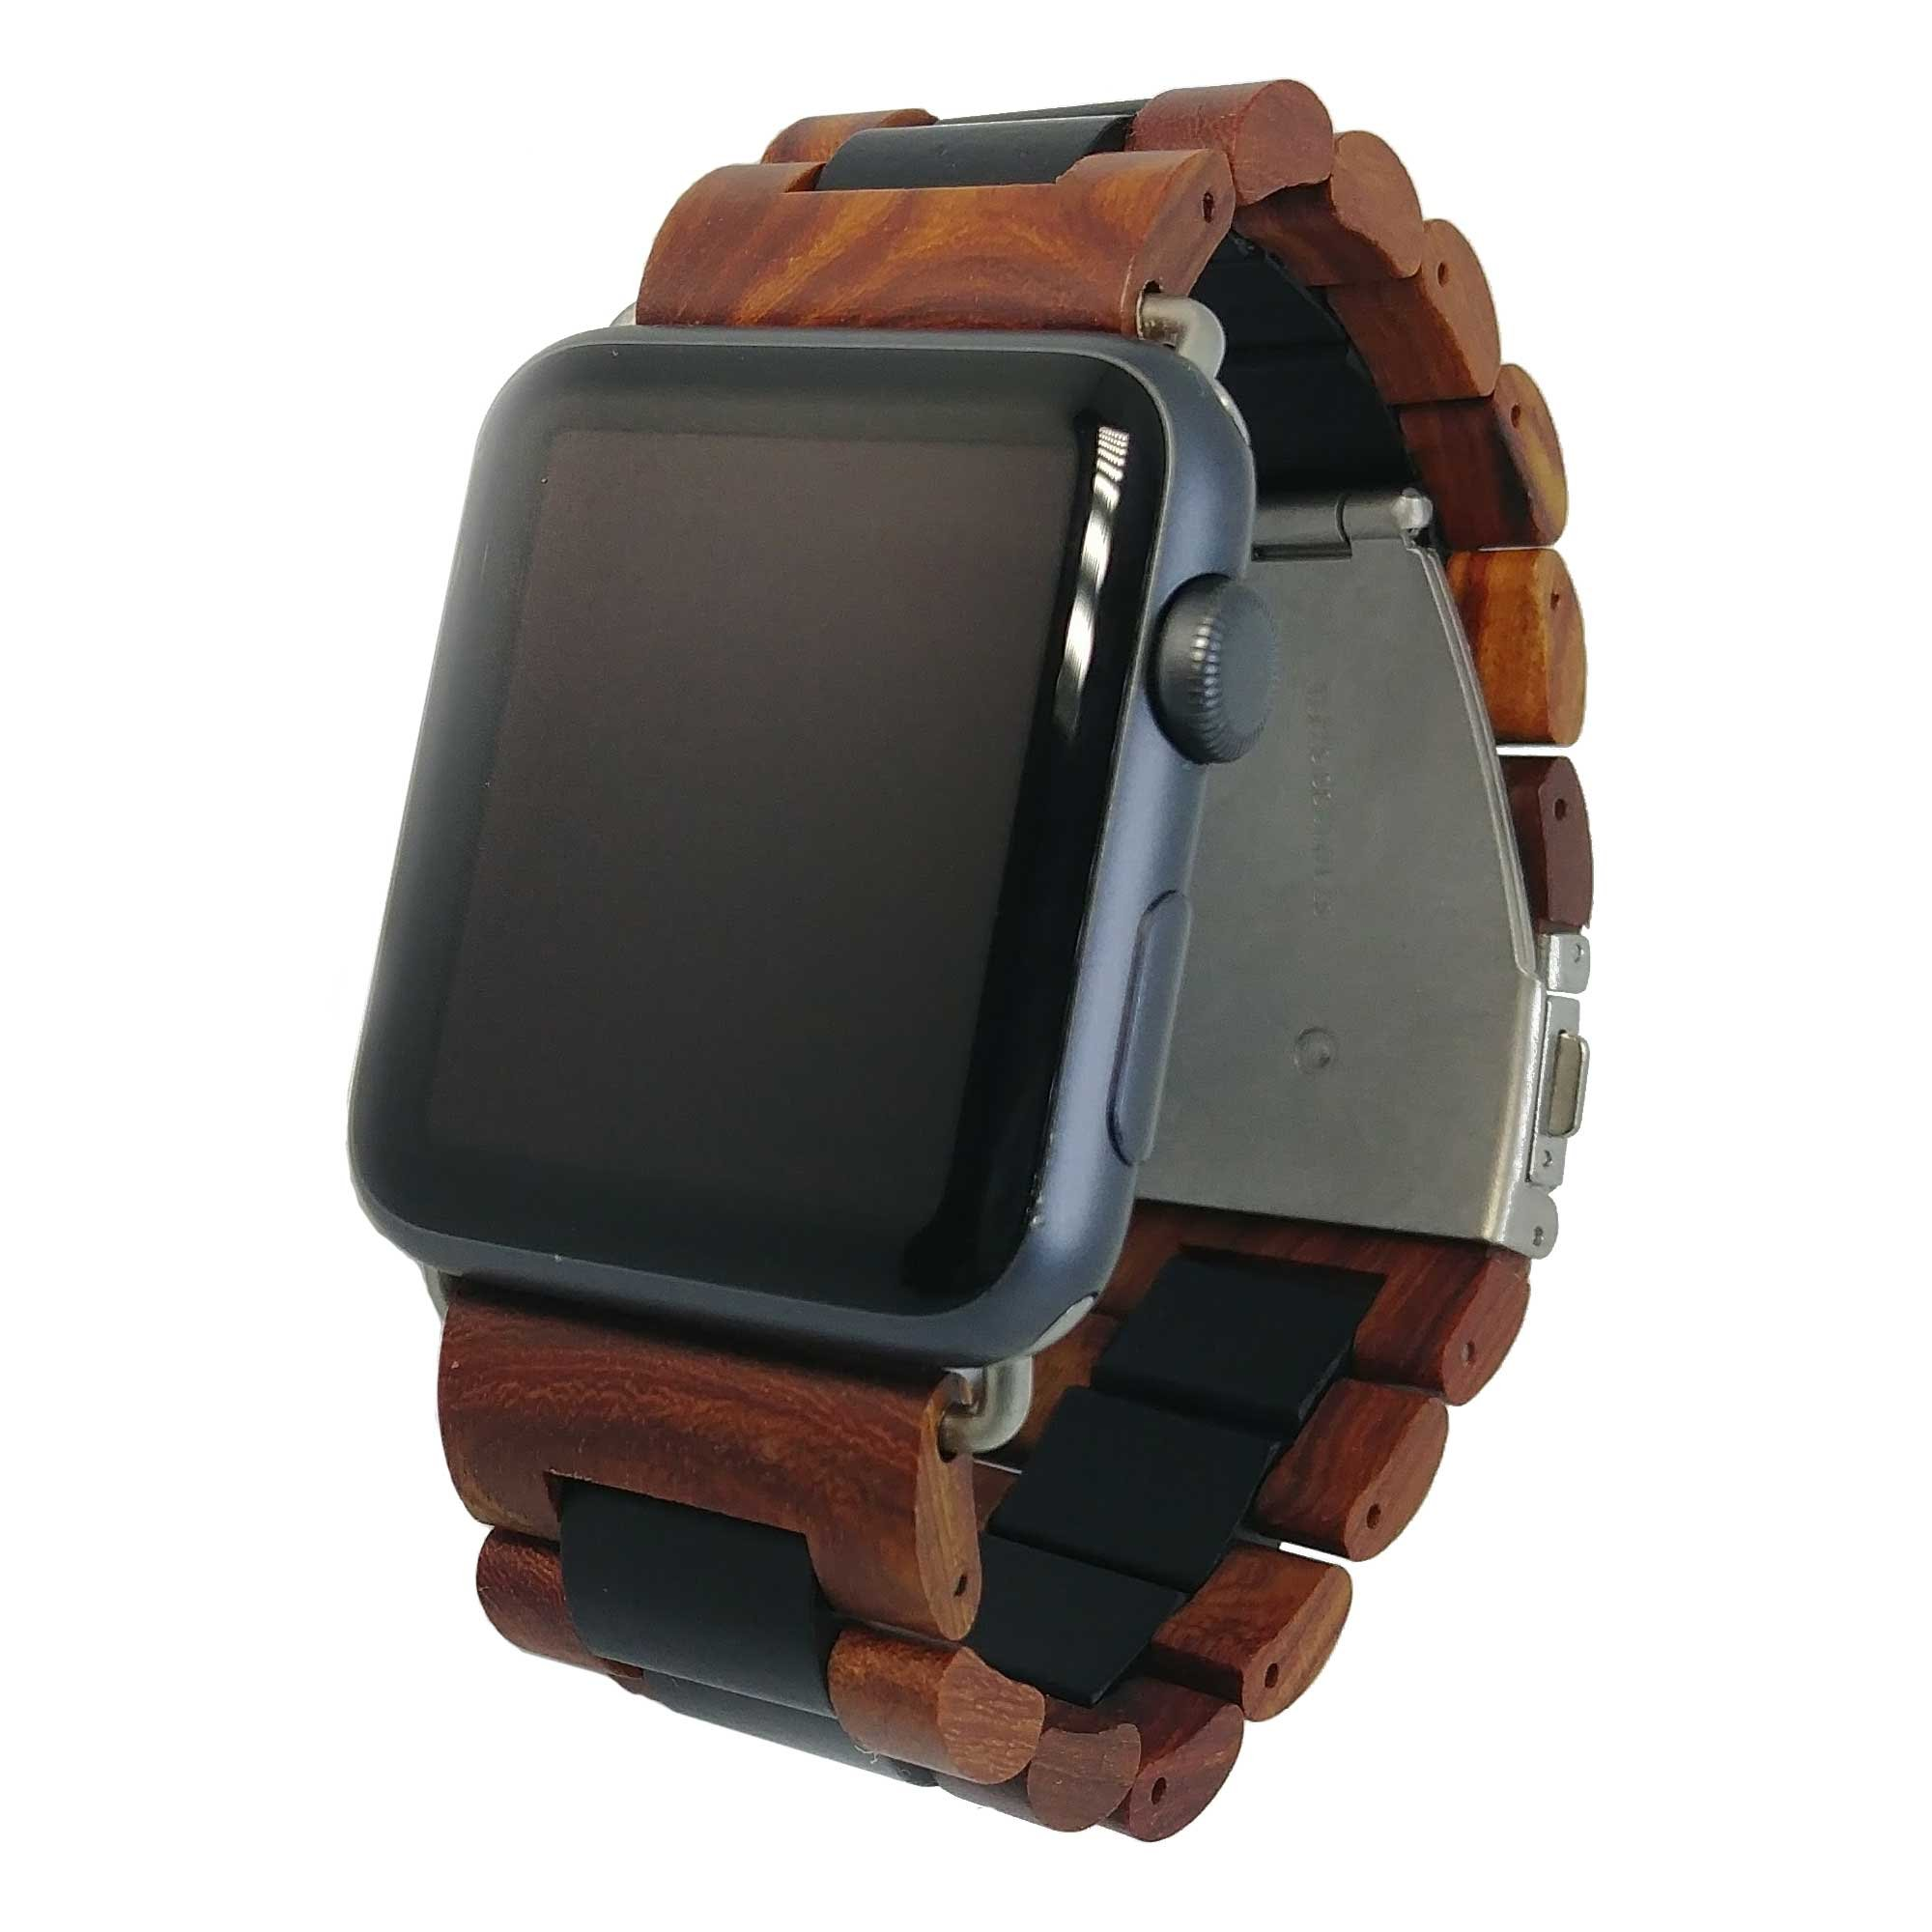 Ottm Apple Watch Band - 42 mm Unique Hardwood Watch Strap for Apple iWatch with Extra Links and Tool for Resizing (Sandalwood) by Ottm